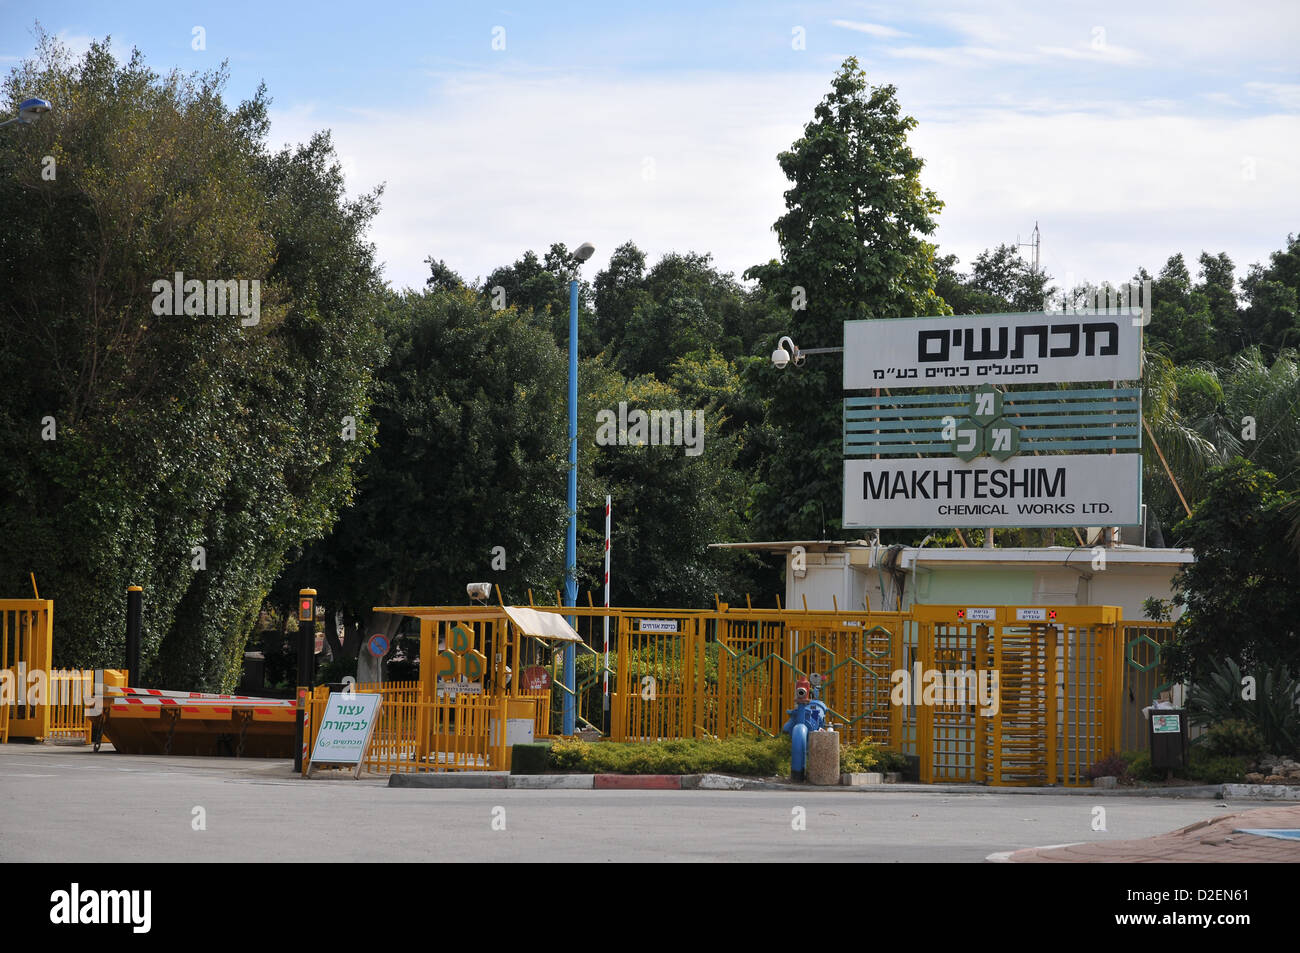 Makhteshim Chemical Works, an insecticide and fungicide maker and importer of crop protection chemicals - Stock Image